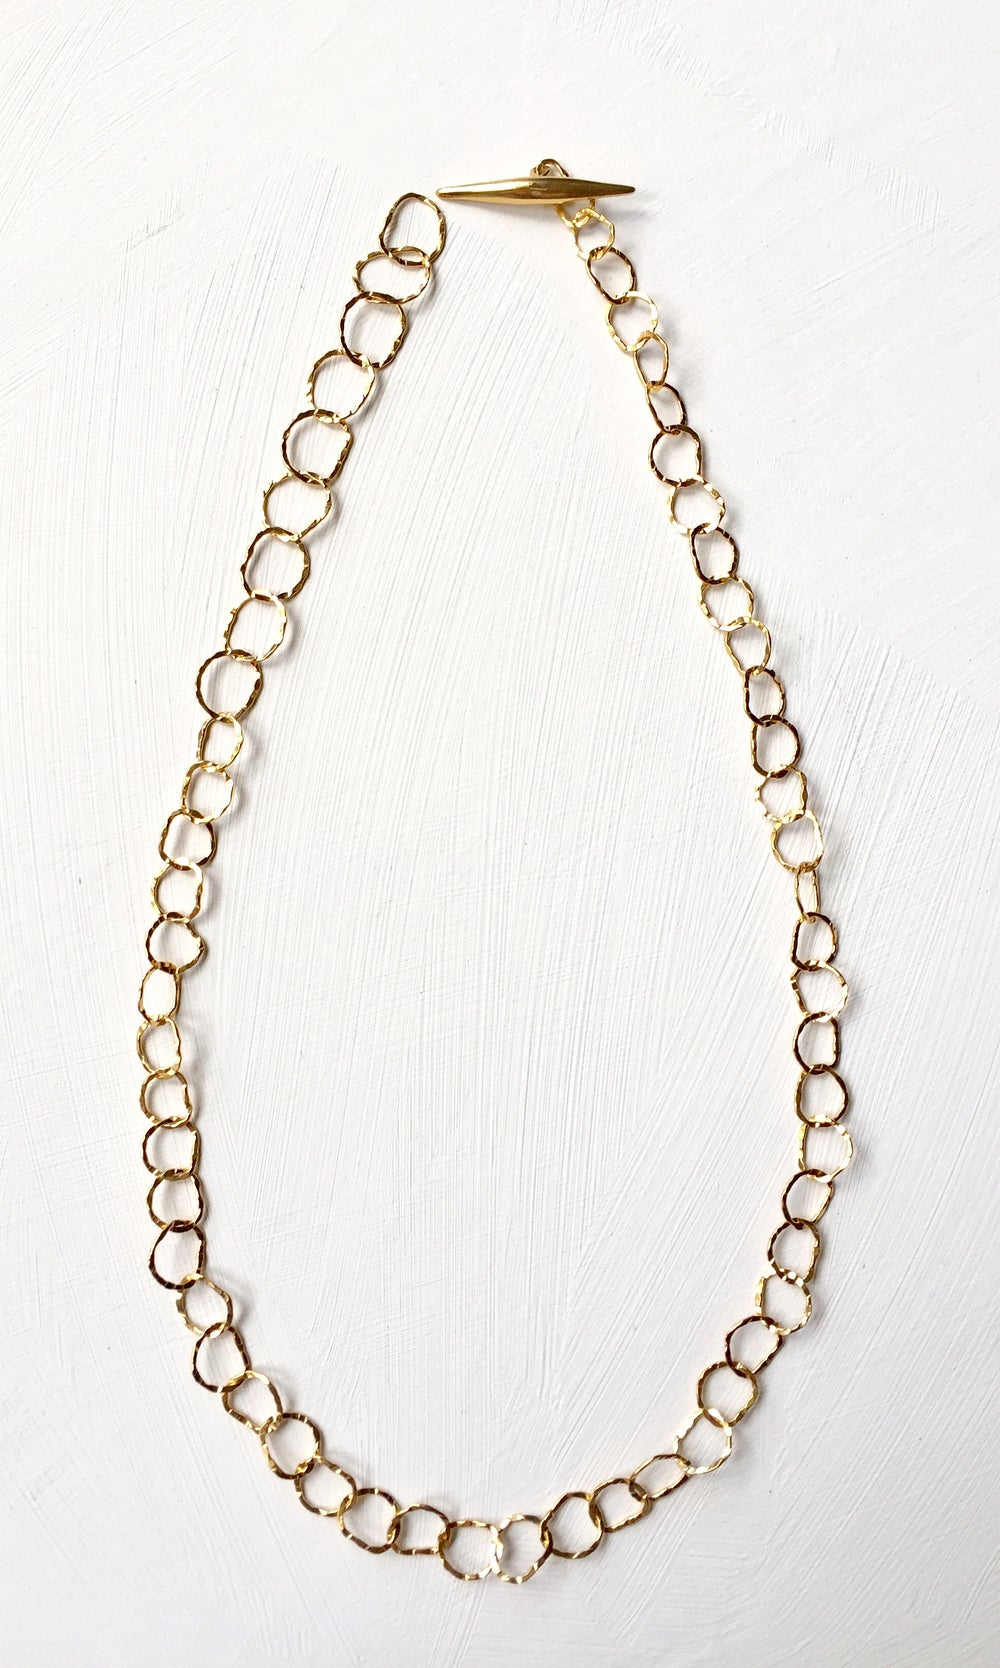 Image of Afiok necklace single length -yellow gold vermeil